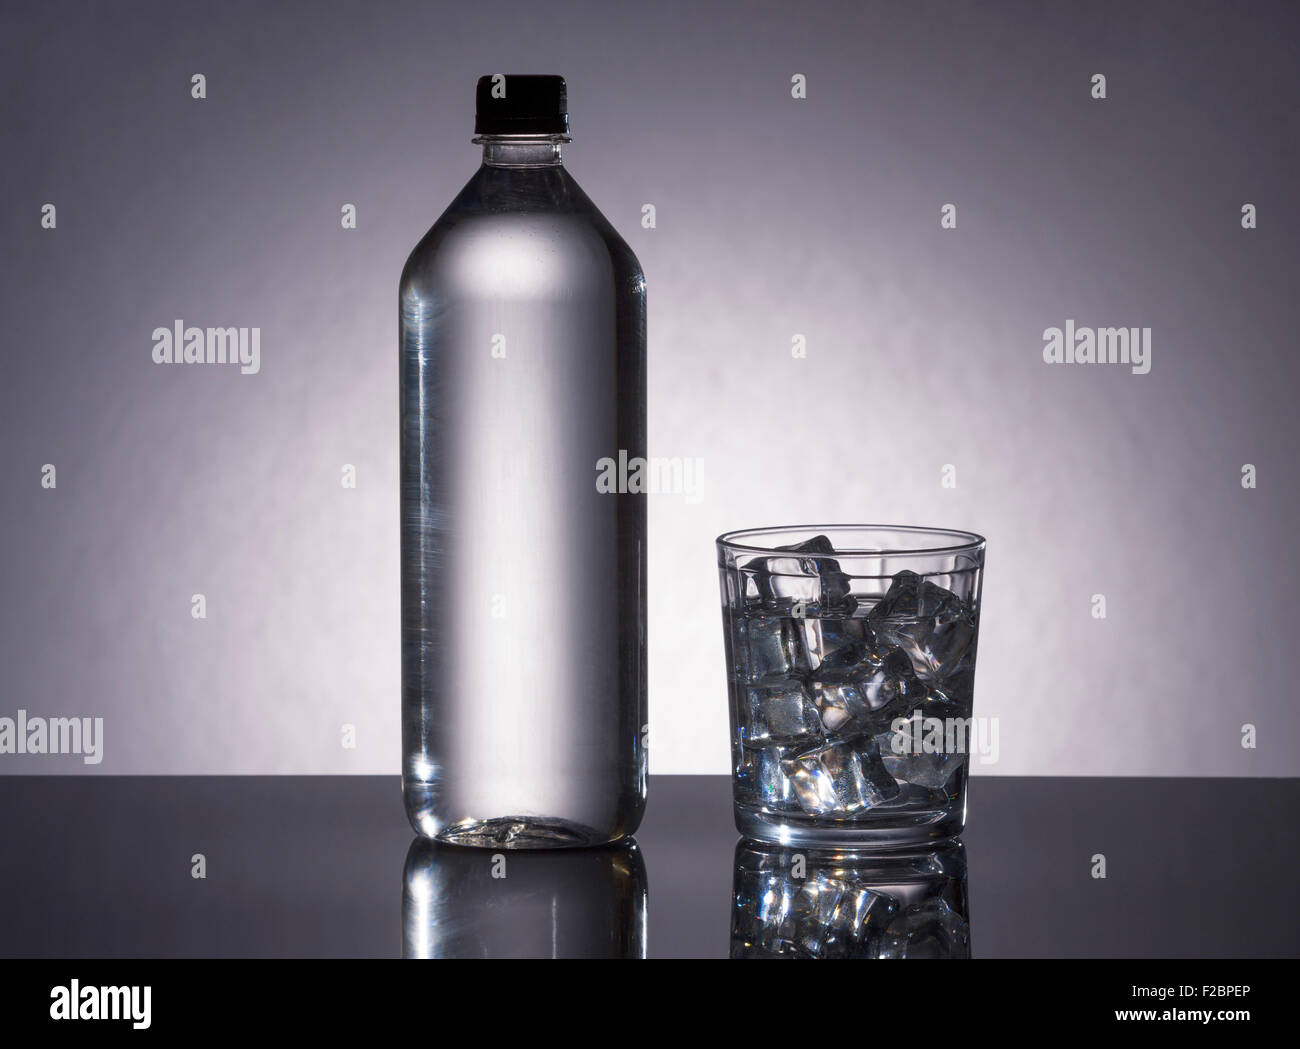 Bottle and glass filled with H2O. - Stock Image